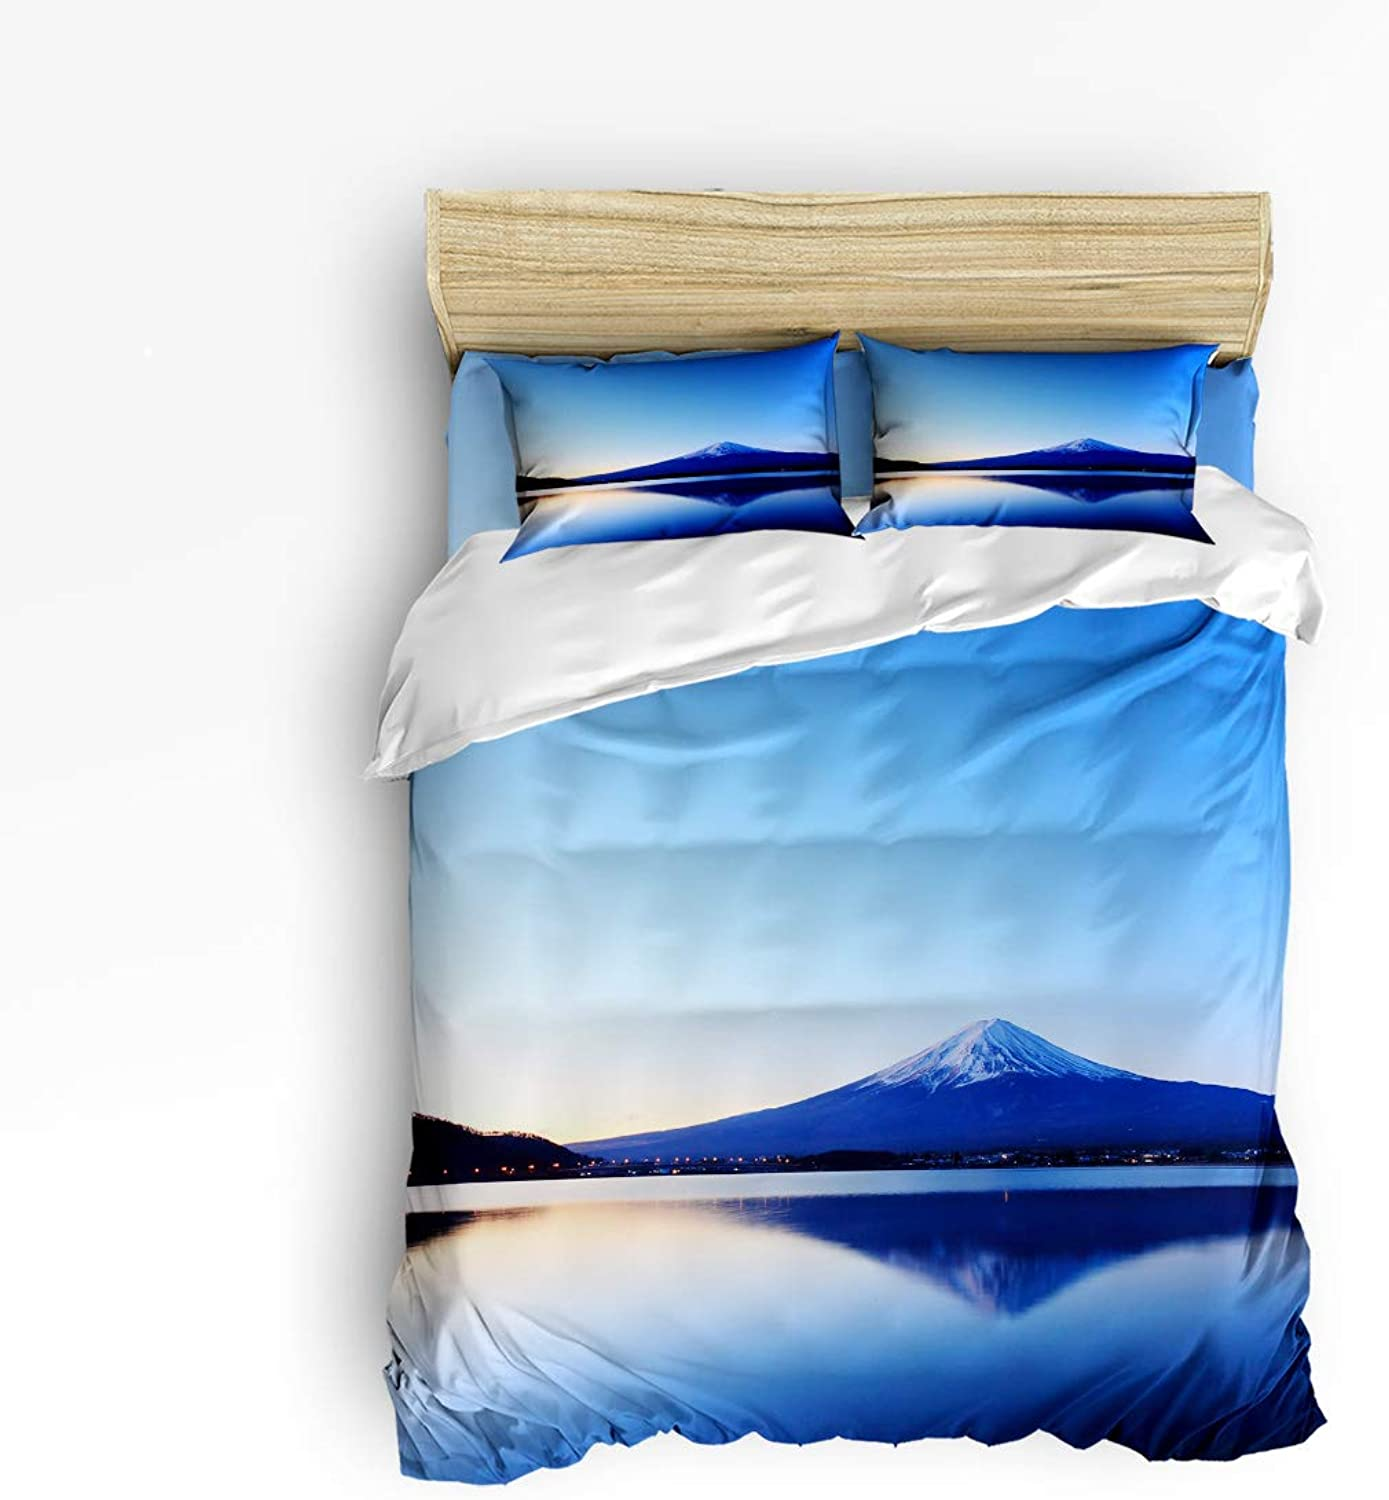 LEO BON Duvet Cover Set Twin Size Snowy Mountain Fuji Lake View Picture Print Floral Duvet Cover and Pillow Shams Bed Set